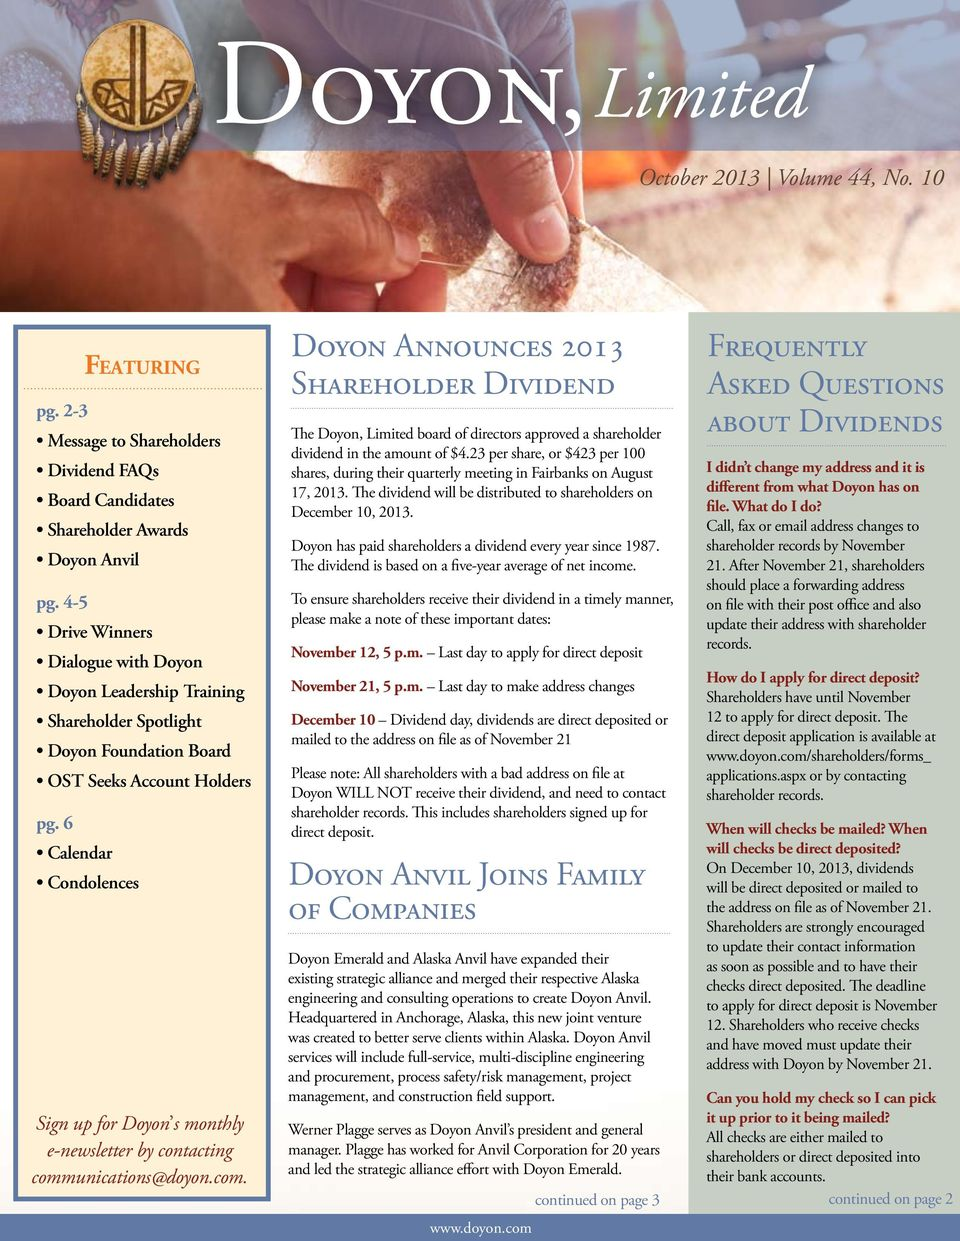 6 Calendar Condolences Sign up for Doyon s monthly e-newsletter by contacting comm